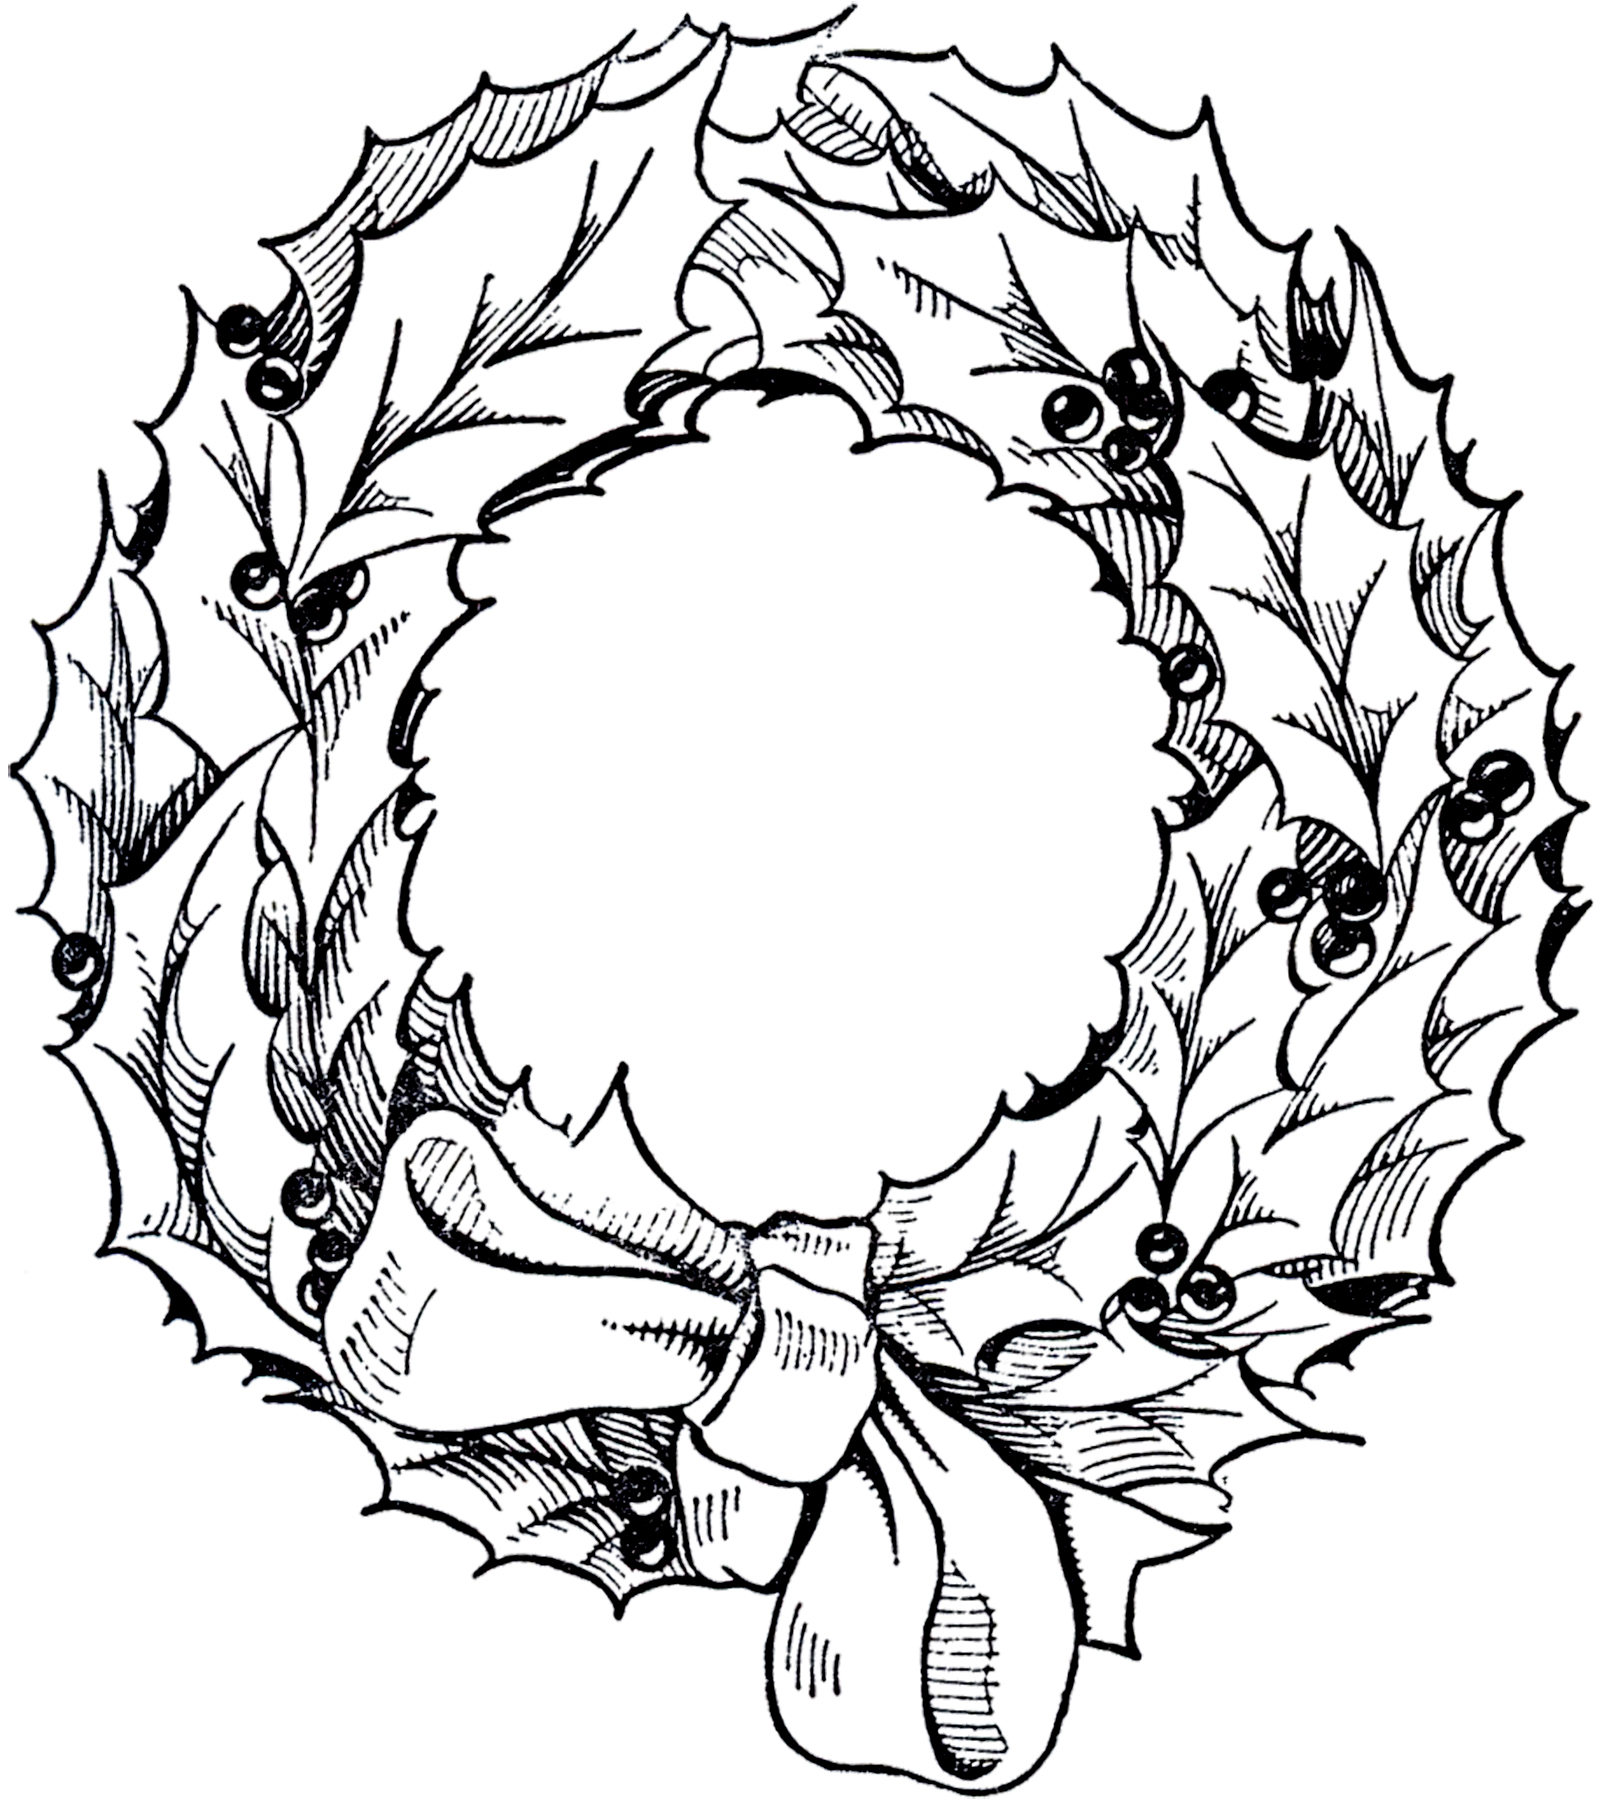 Drawings Of Christmas Wreaths.Vintage Christmas Wreath Graphic The Graphics Fairy